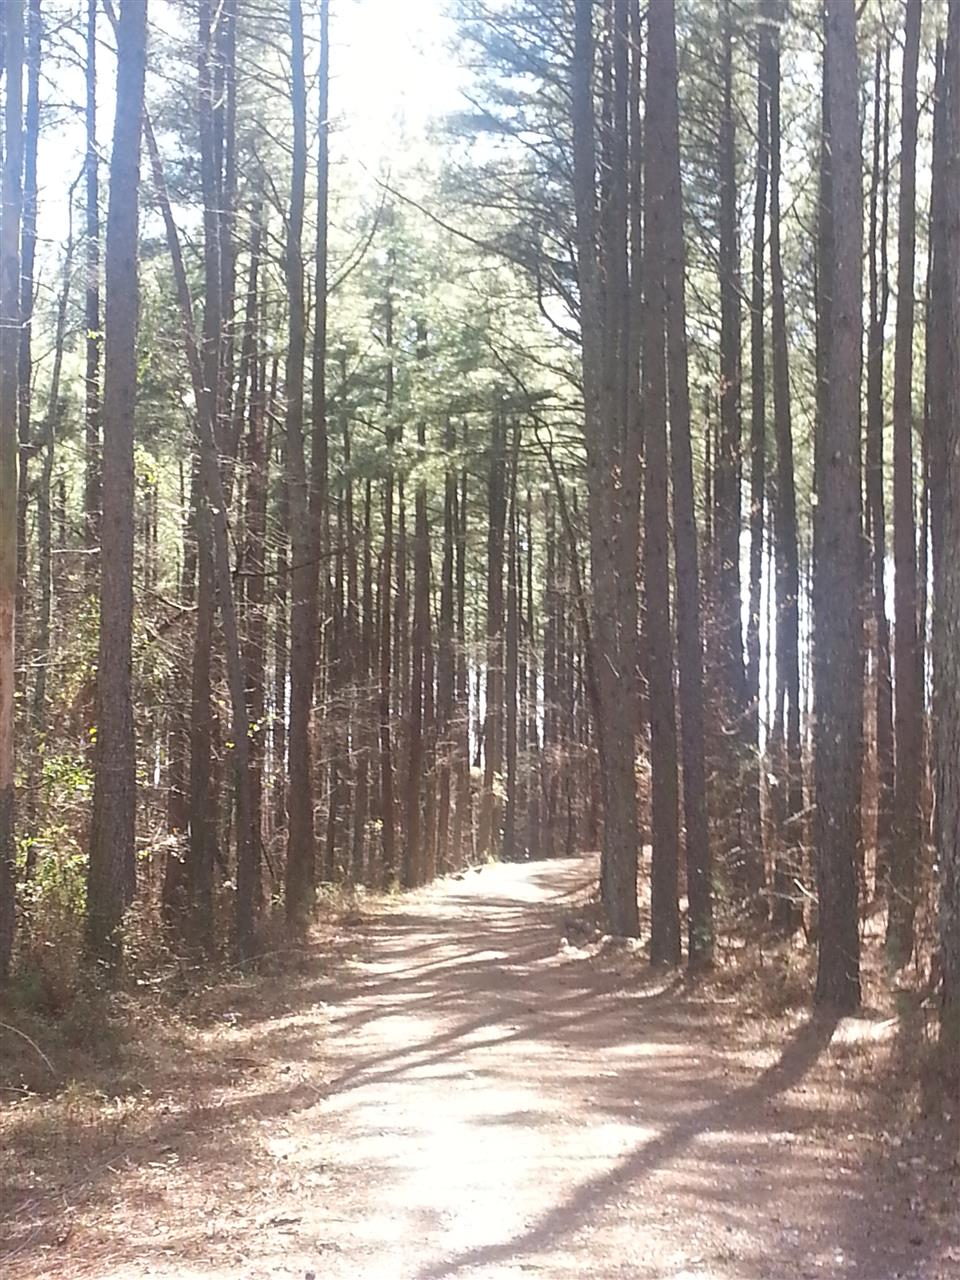 The path taken, Bostic, NC.